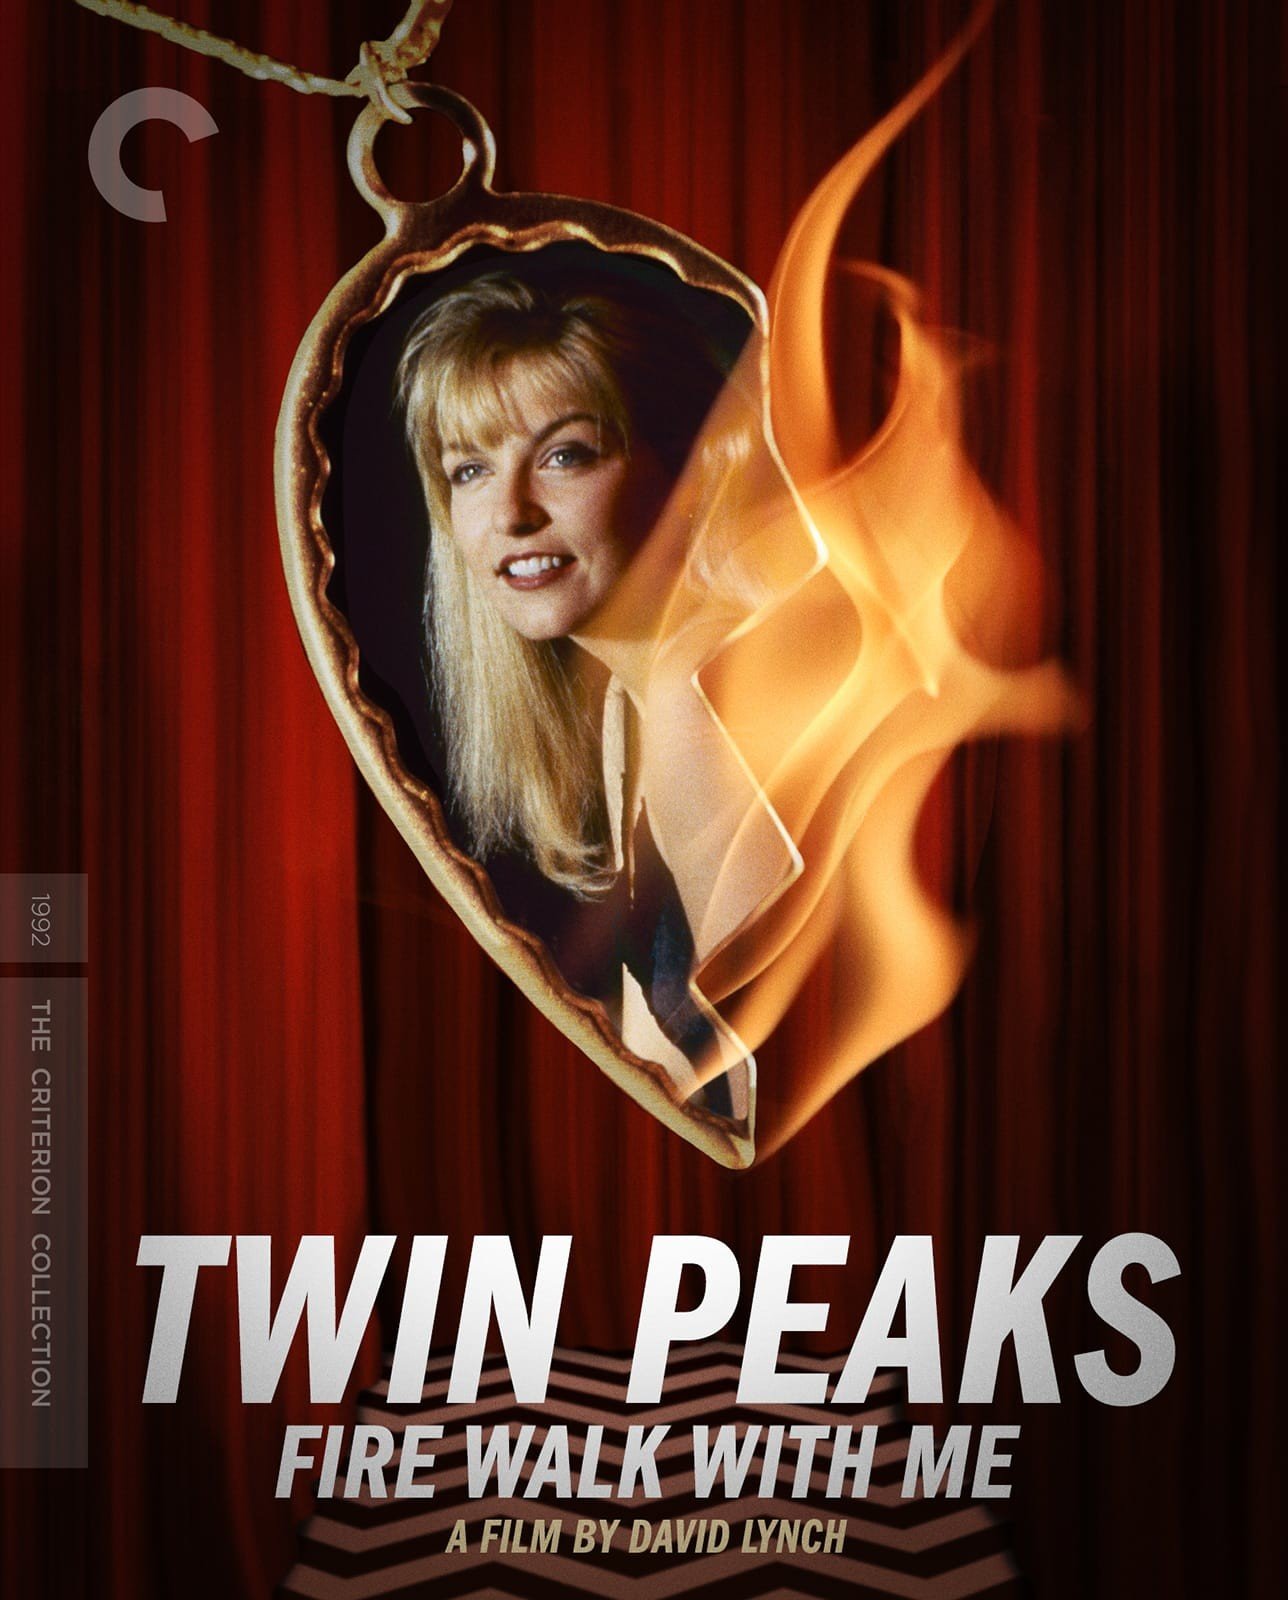 Image result for twin peaks fire walk with me criterion poster